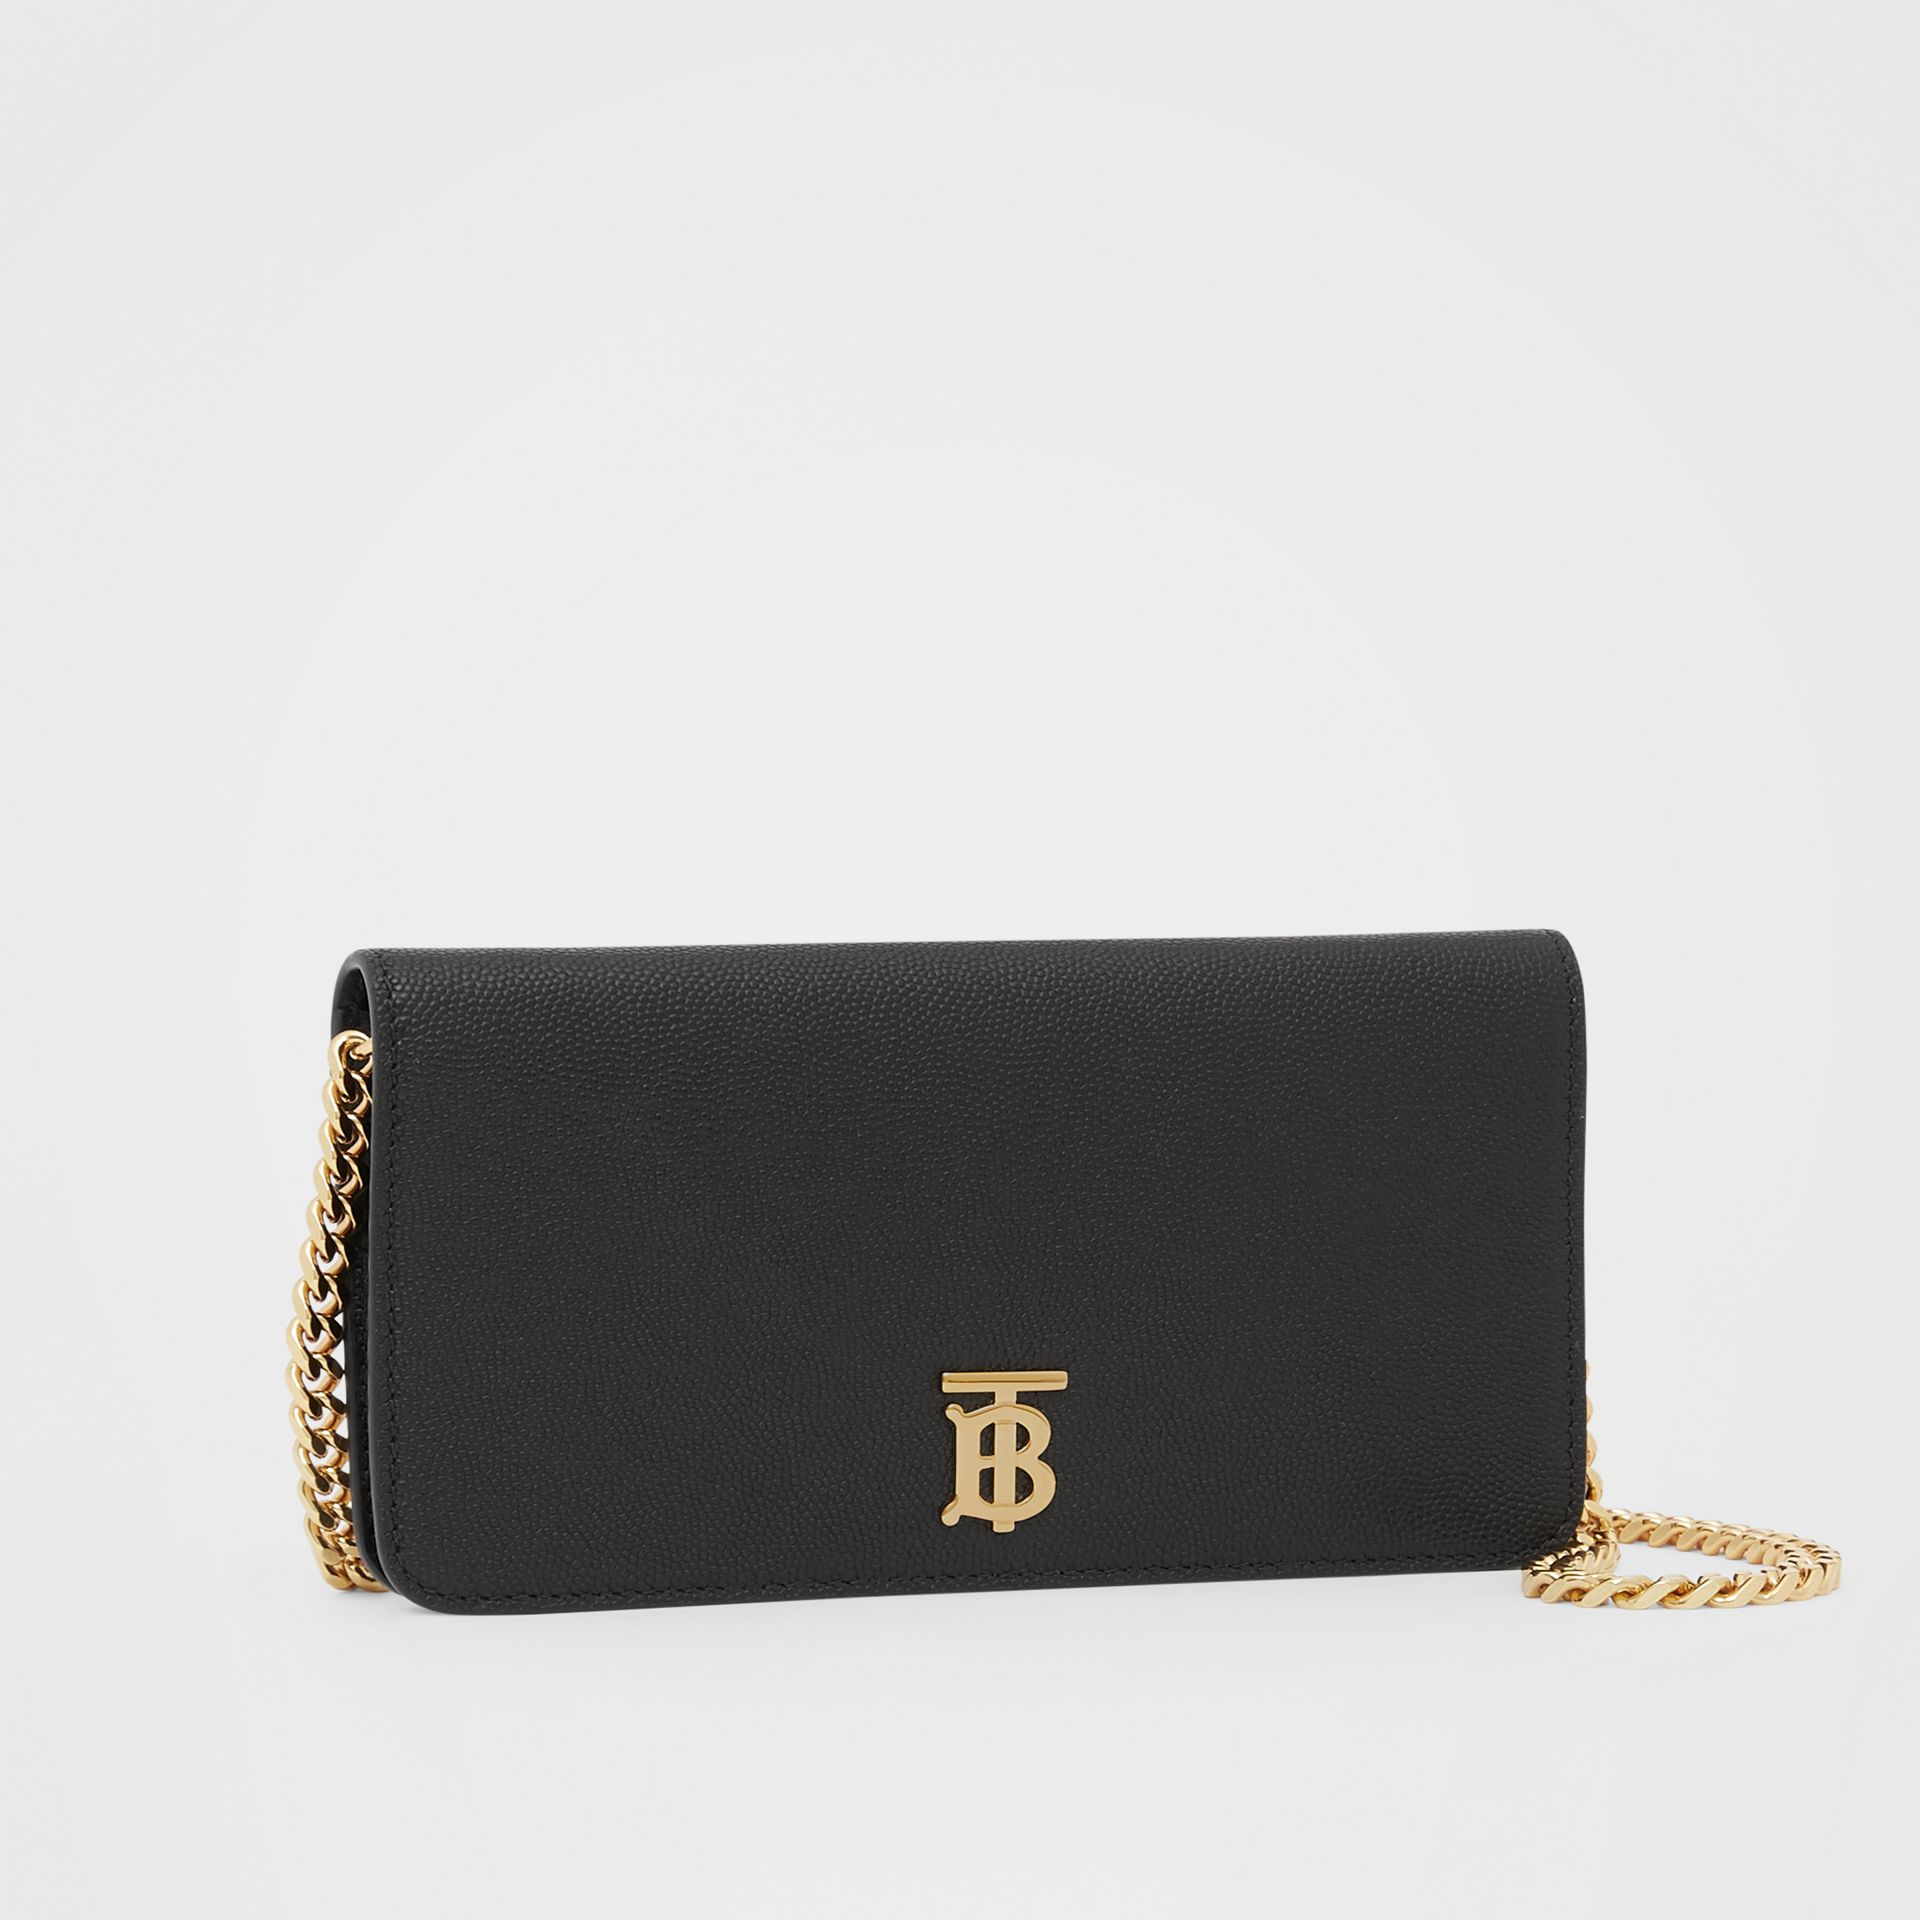 Grainy Leather Phone Wallet with Strap in Black - Women | Burberry - gallery image 4